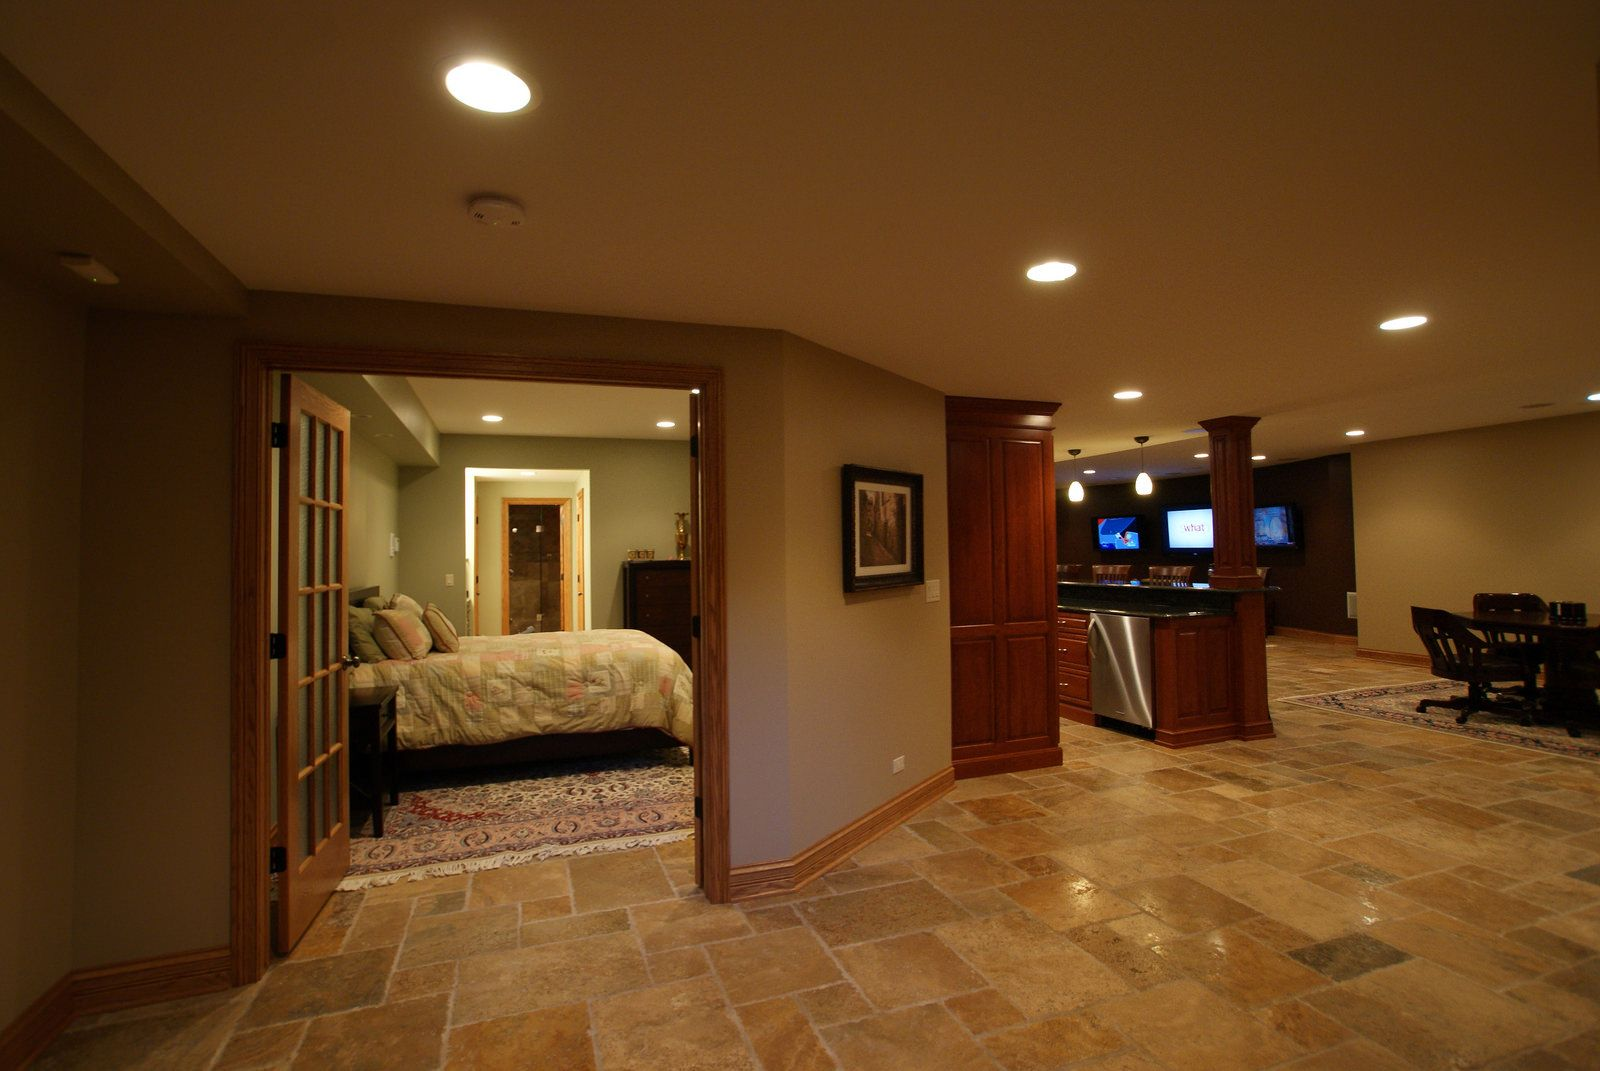 Remodeling Basement Ideas Fascinating Amazing Marietta Basement Remodels Room Additions Georgia Also Inspiration Design